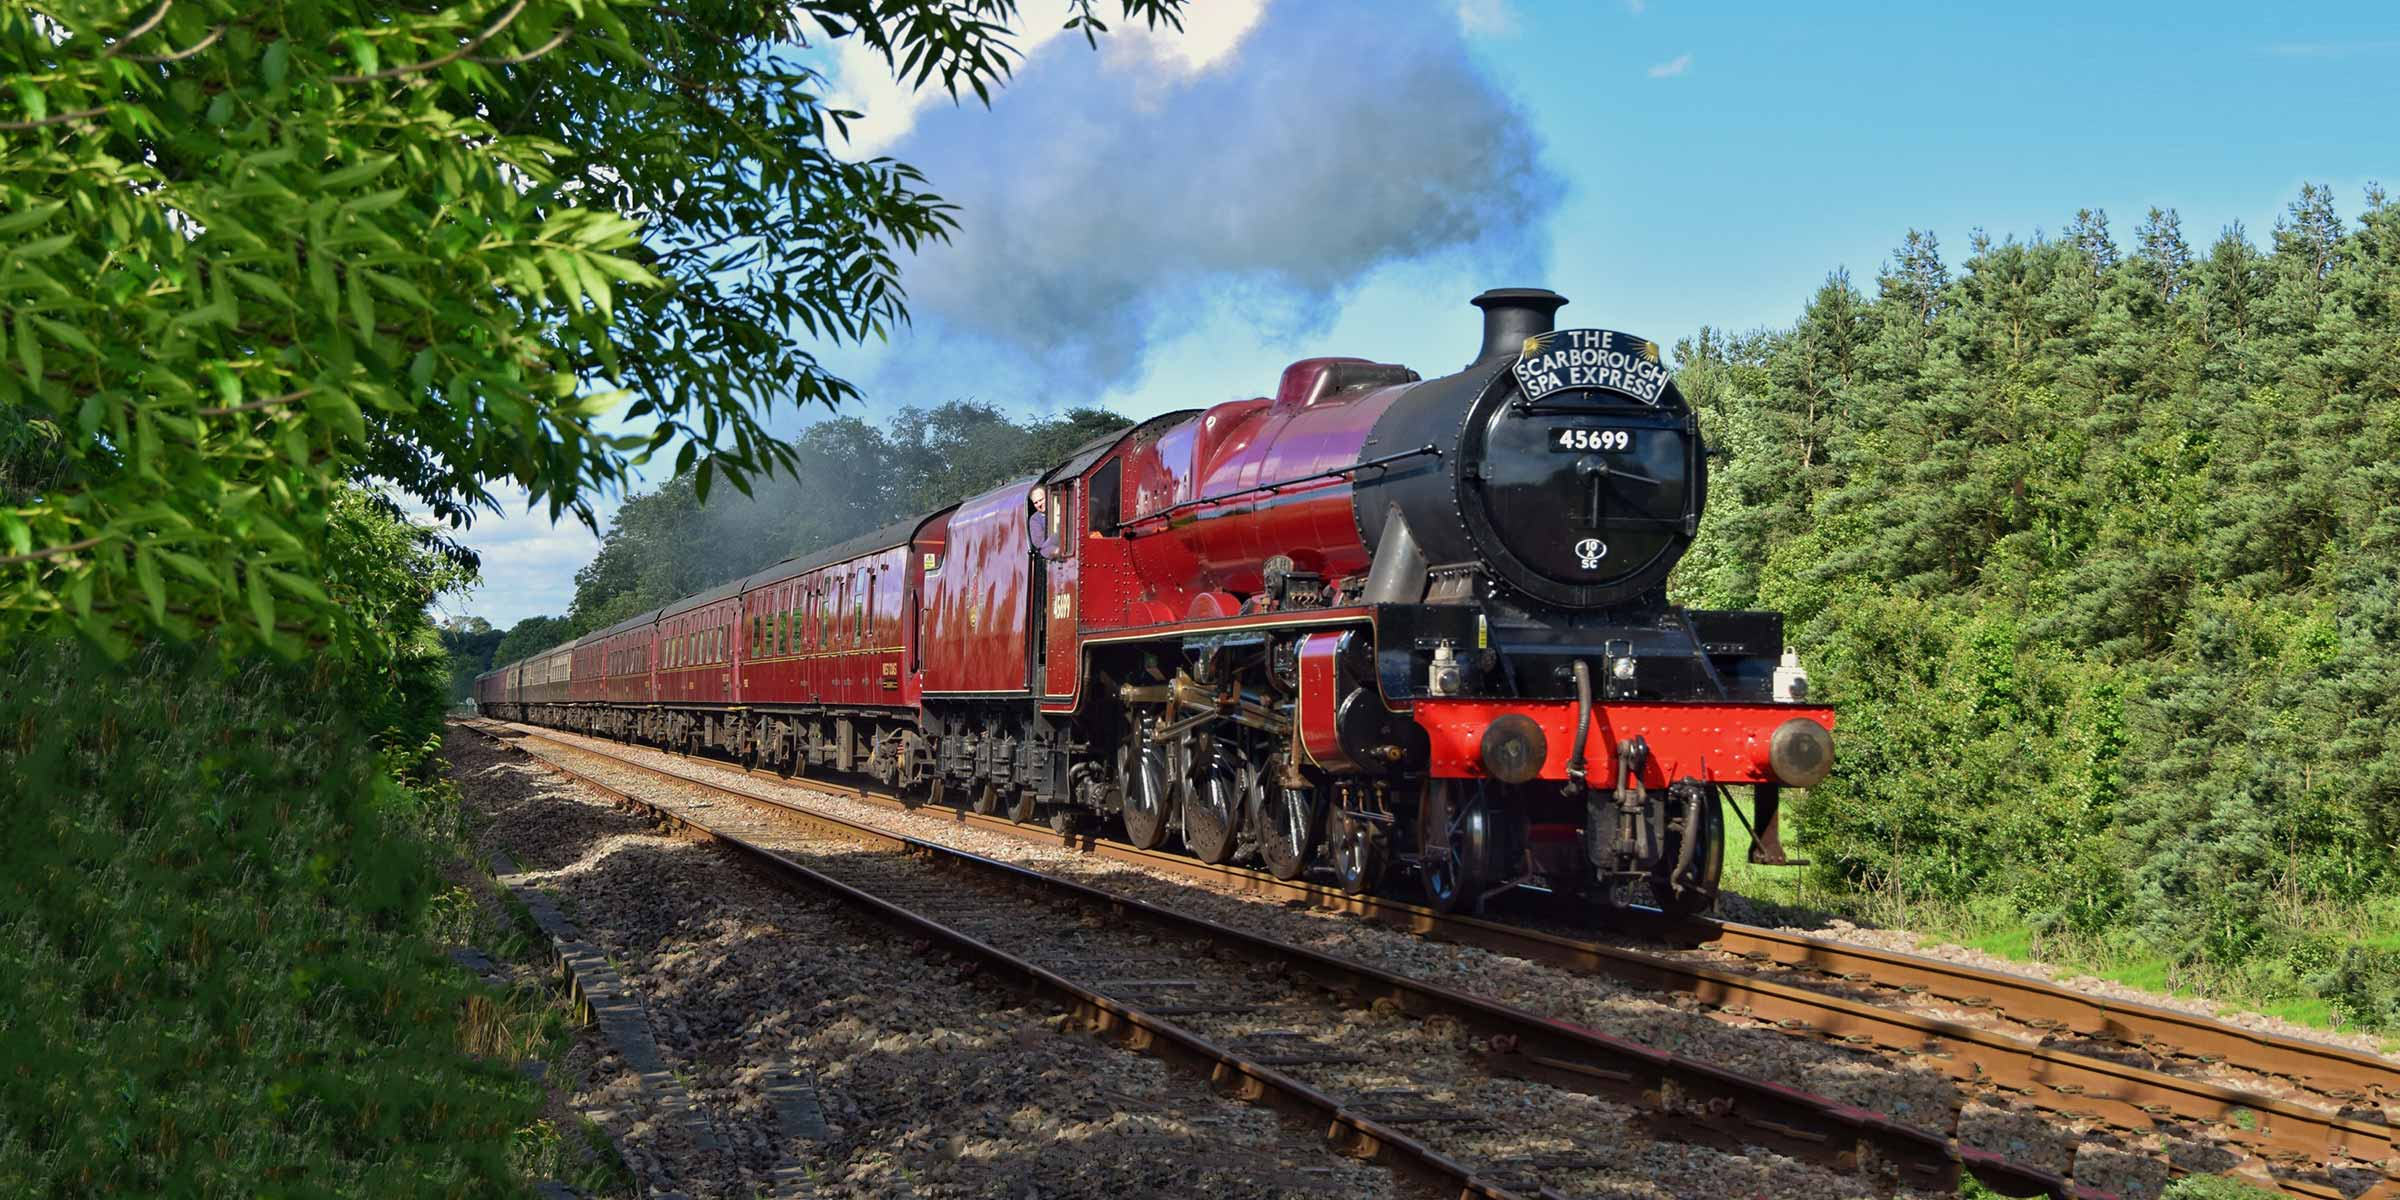 The Scarborough Spa Express